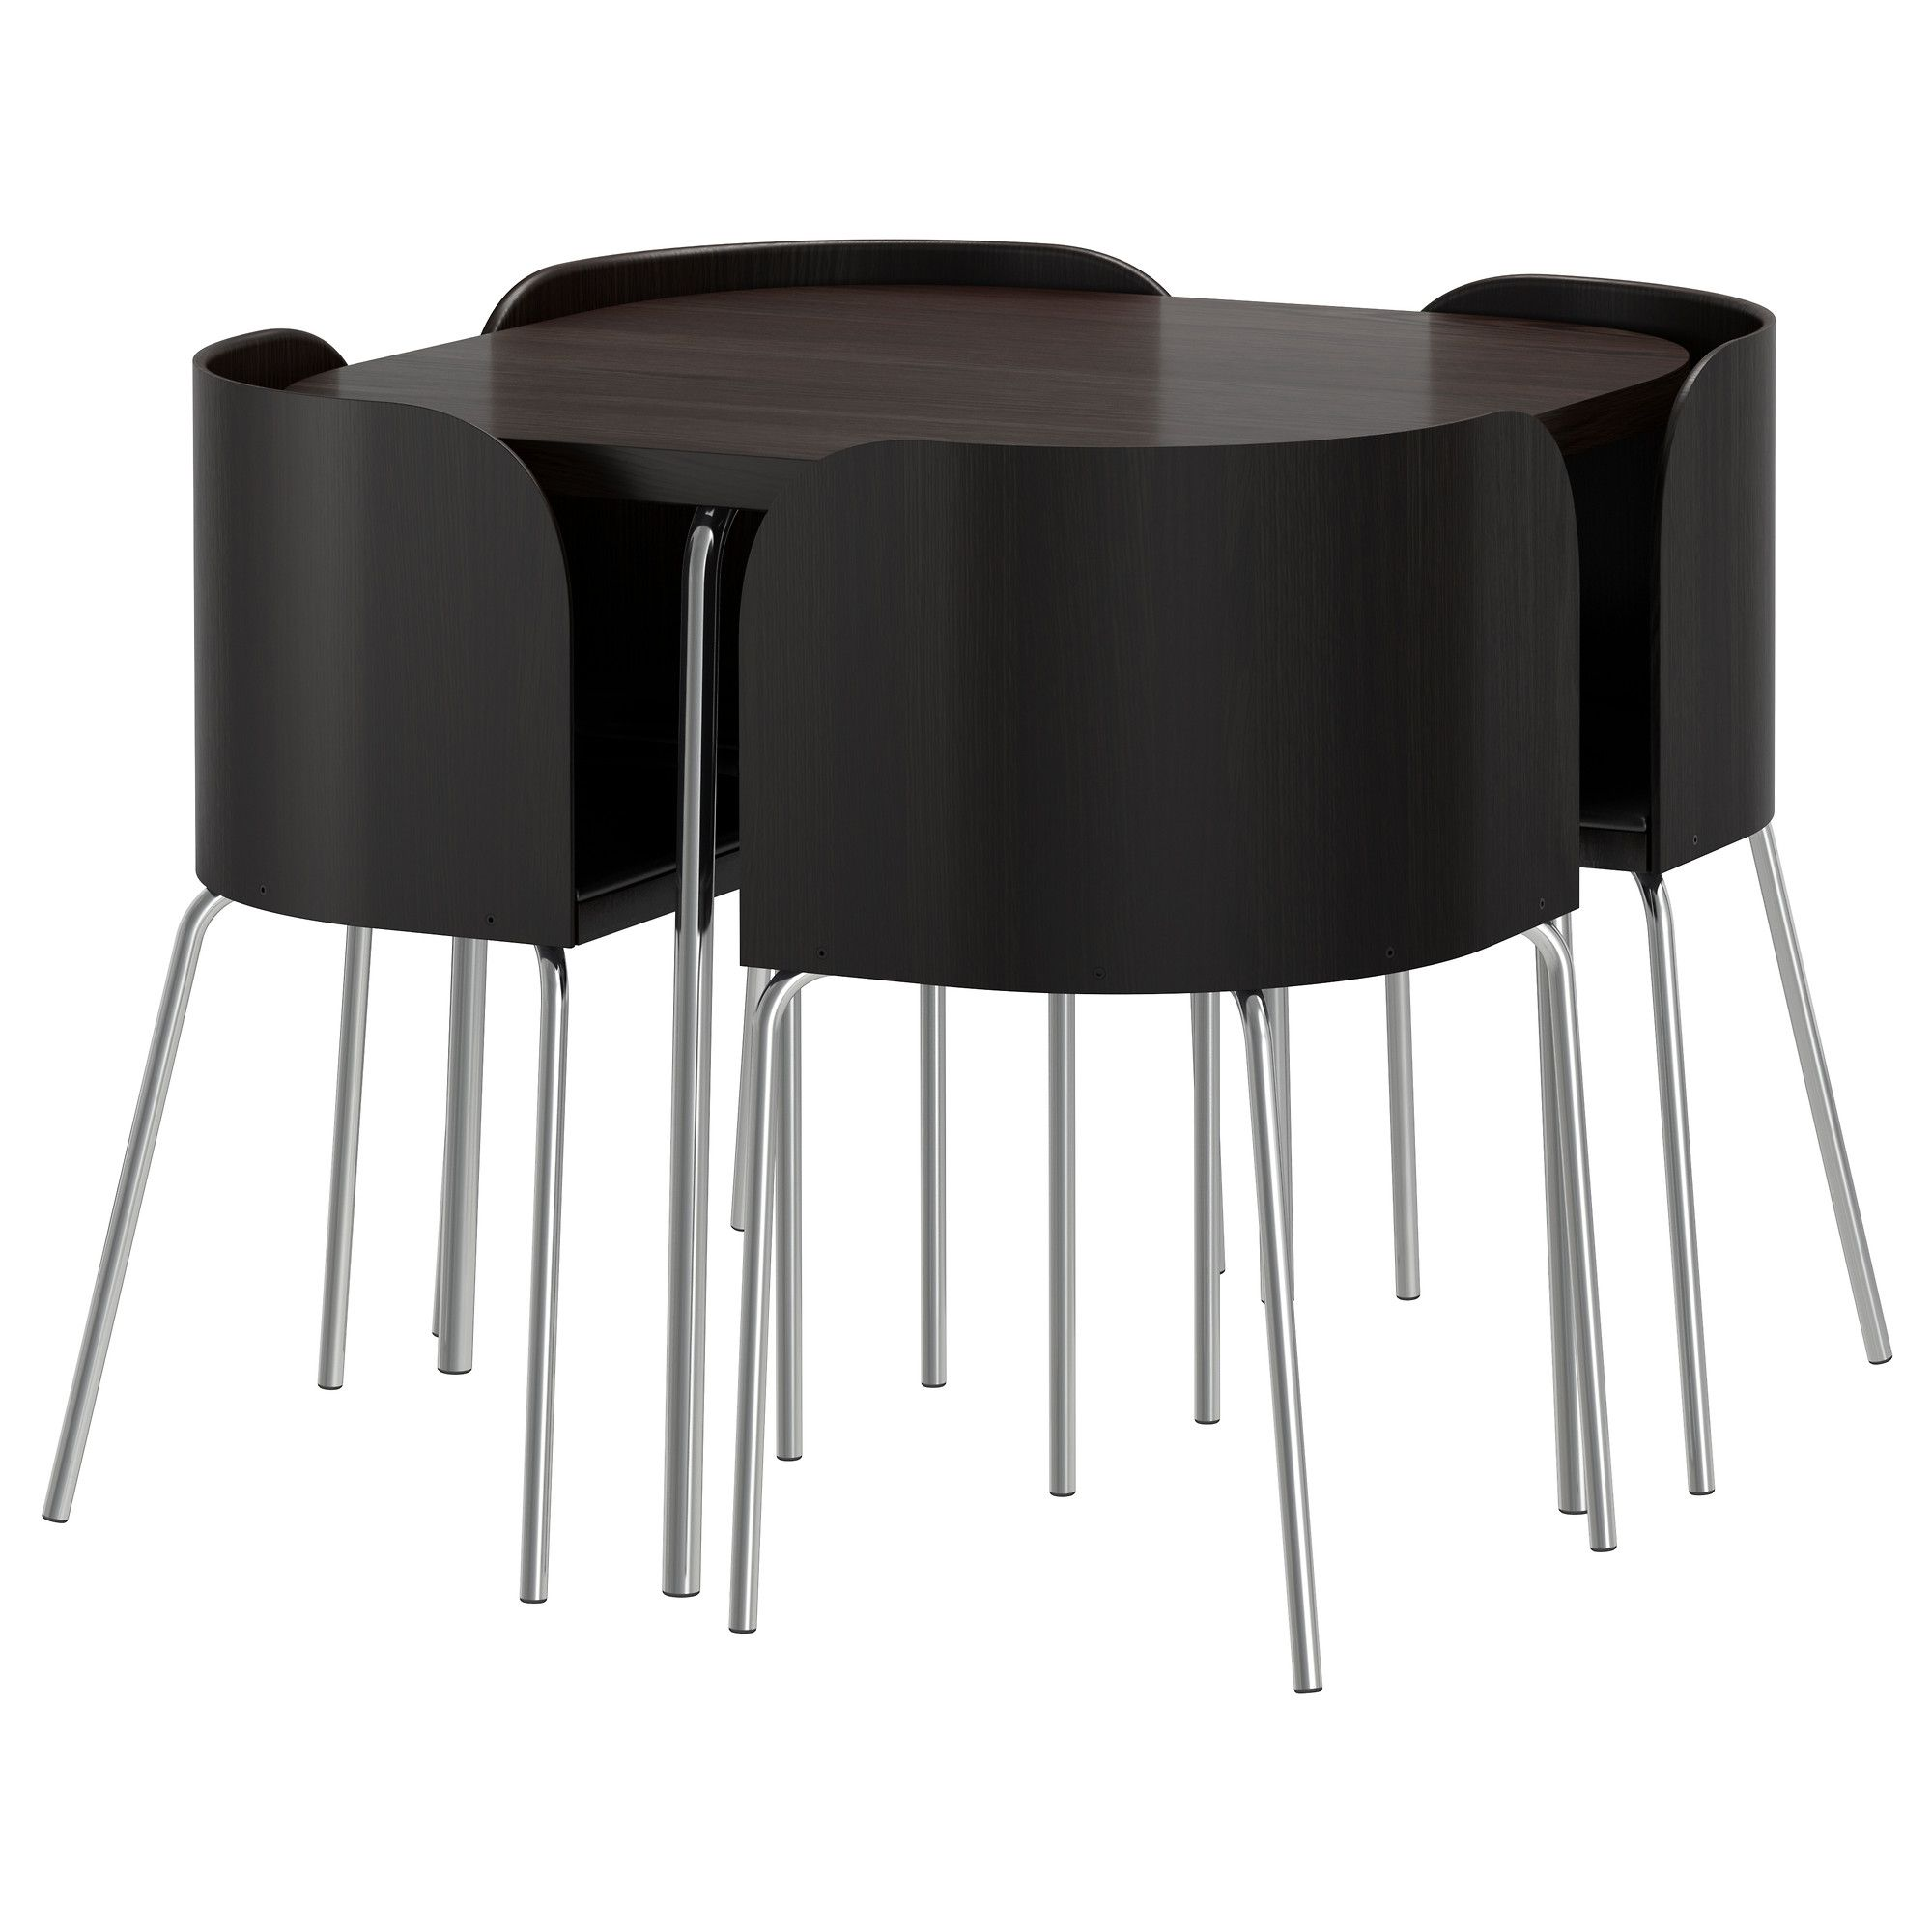 FUSION Table and 4 chairs - IKEA | House Styles | Pinterest | Chrome ...